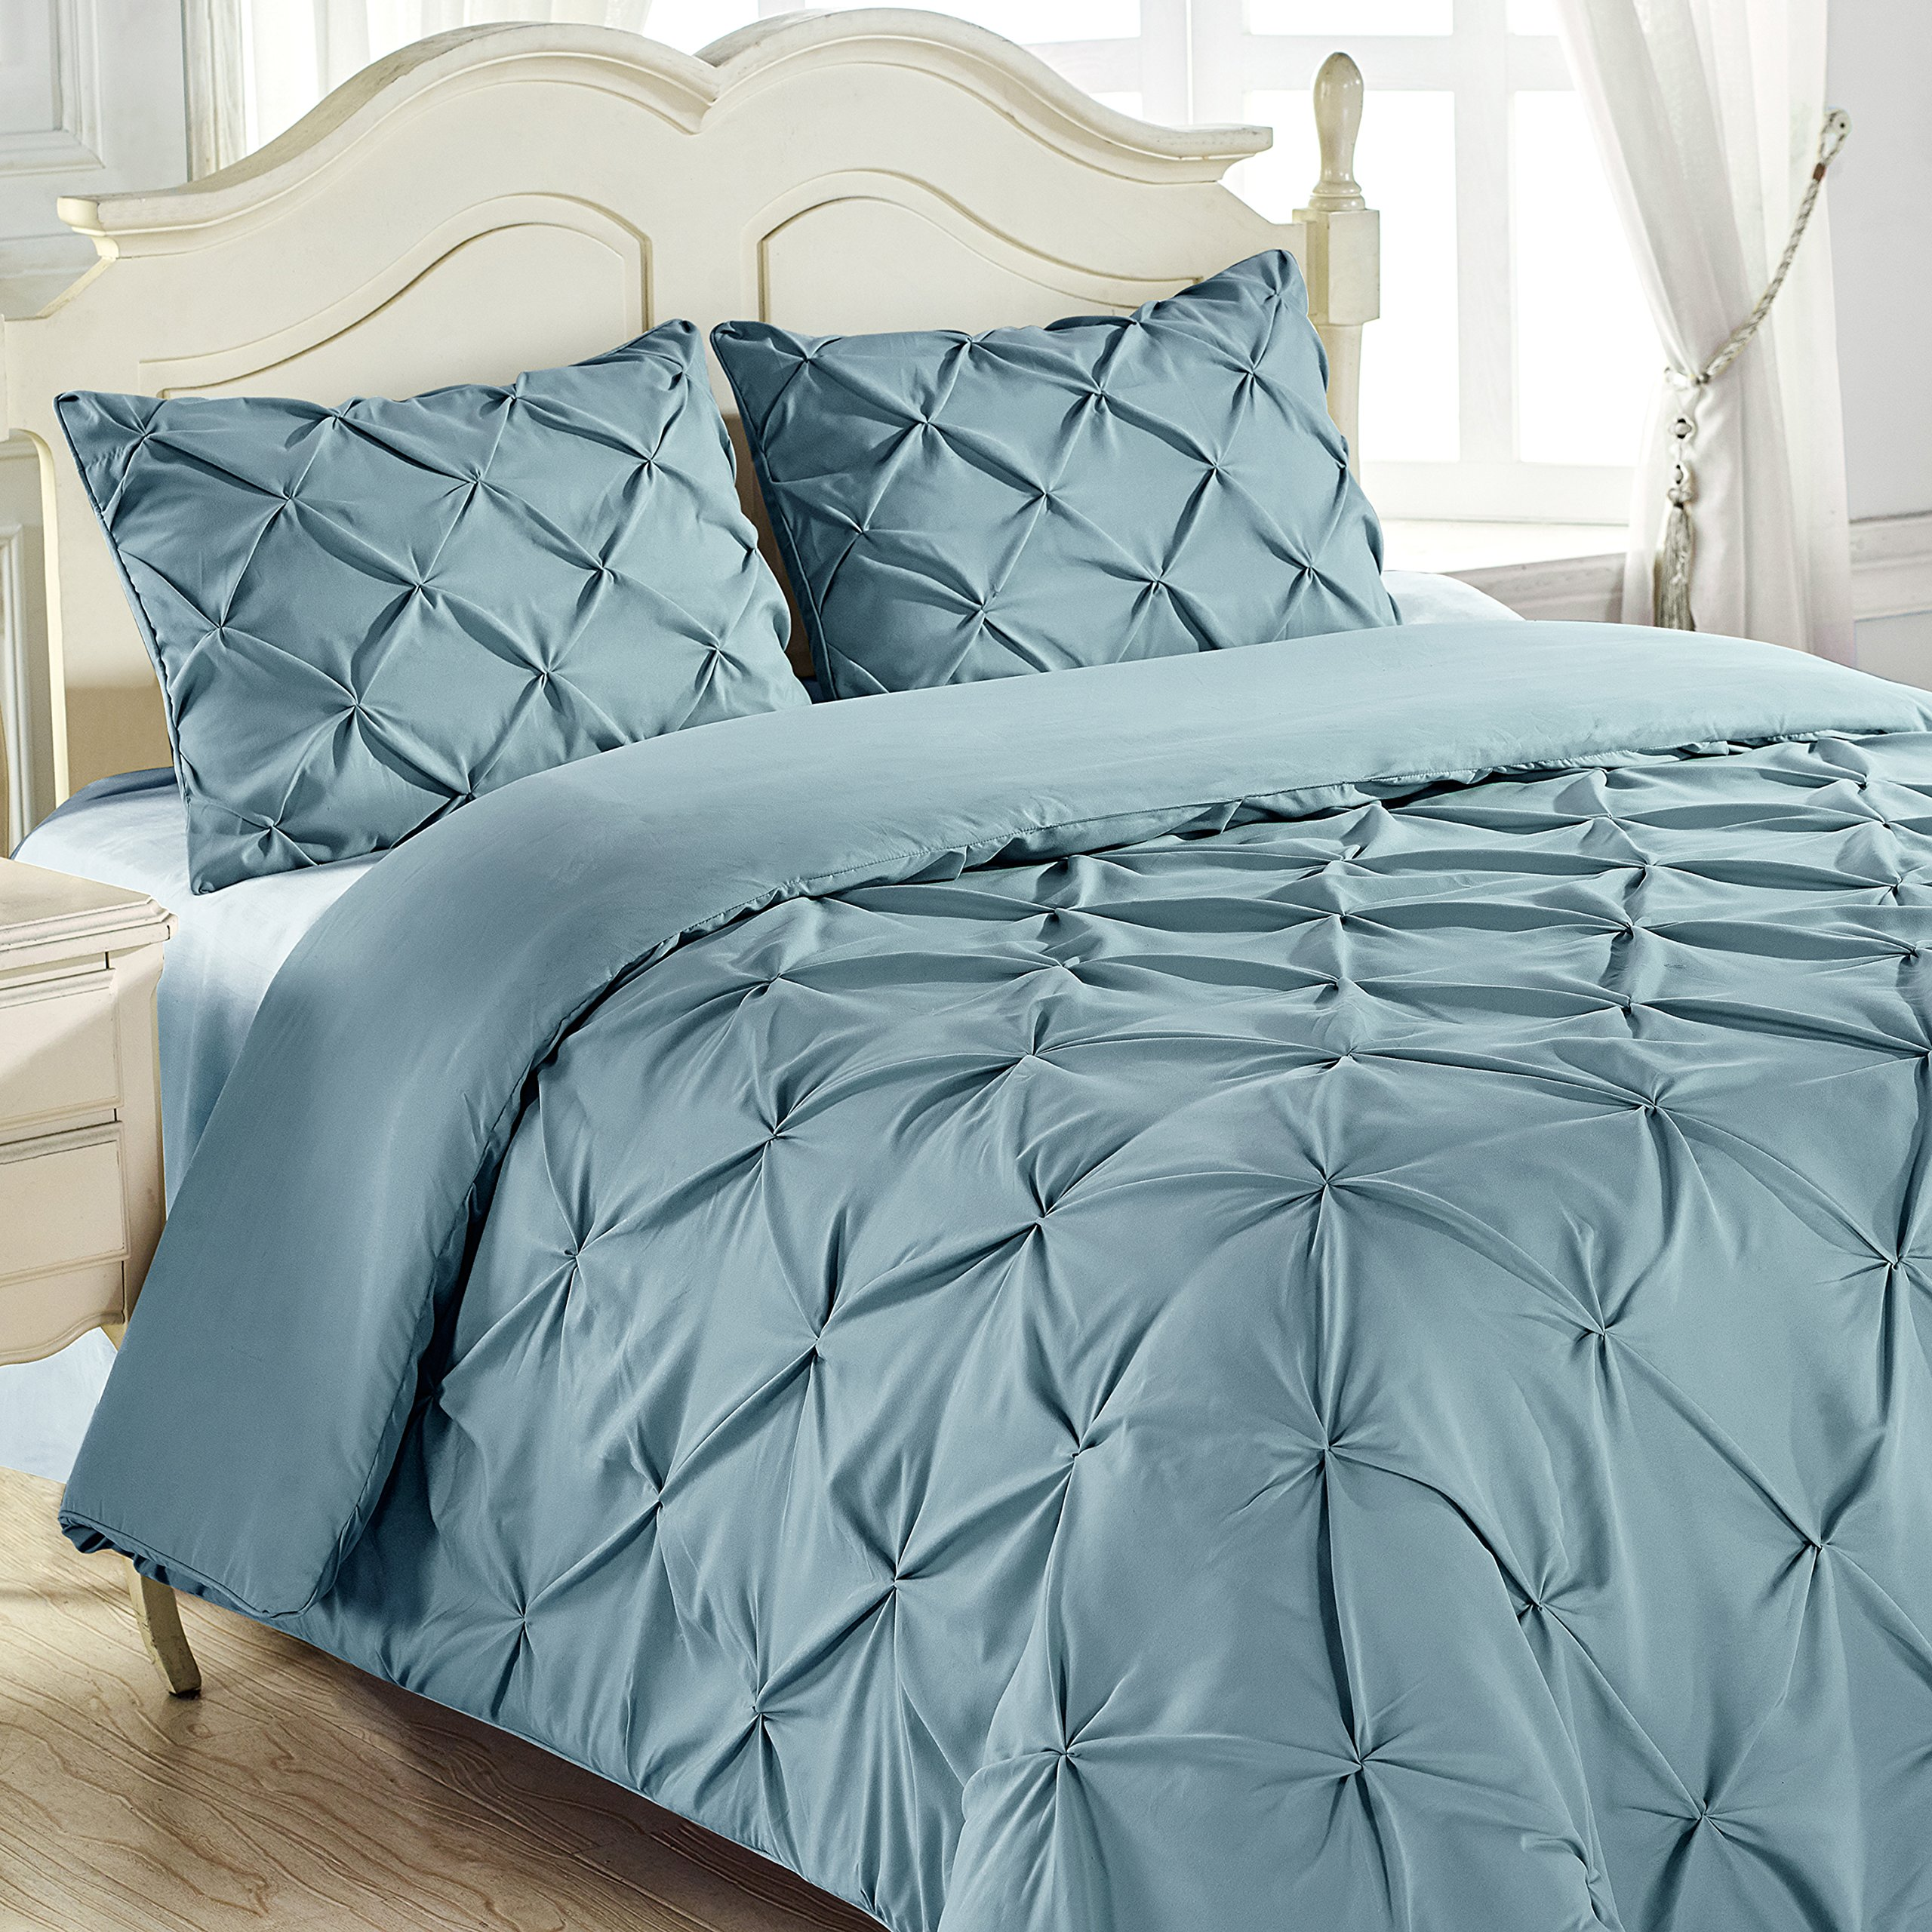 King & Queen Home Reinforced Double Stitch 3 Piece Pinch Pleat Comforter Set (Cali King, Spa Blue)